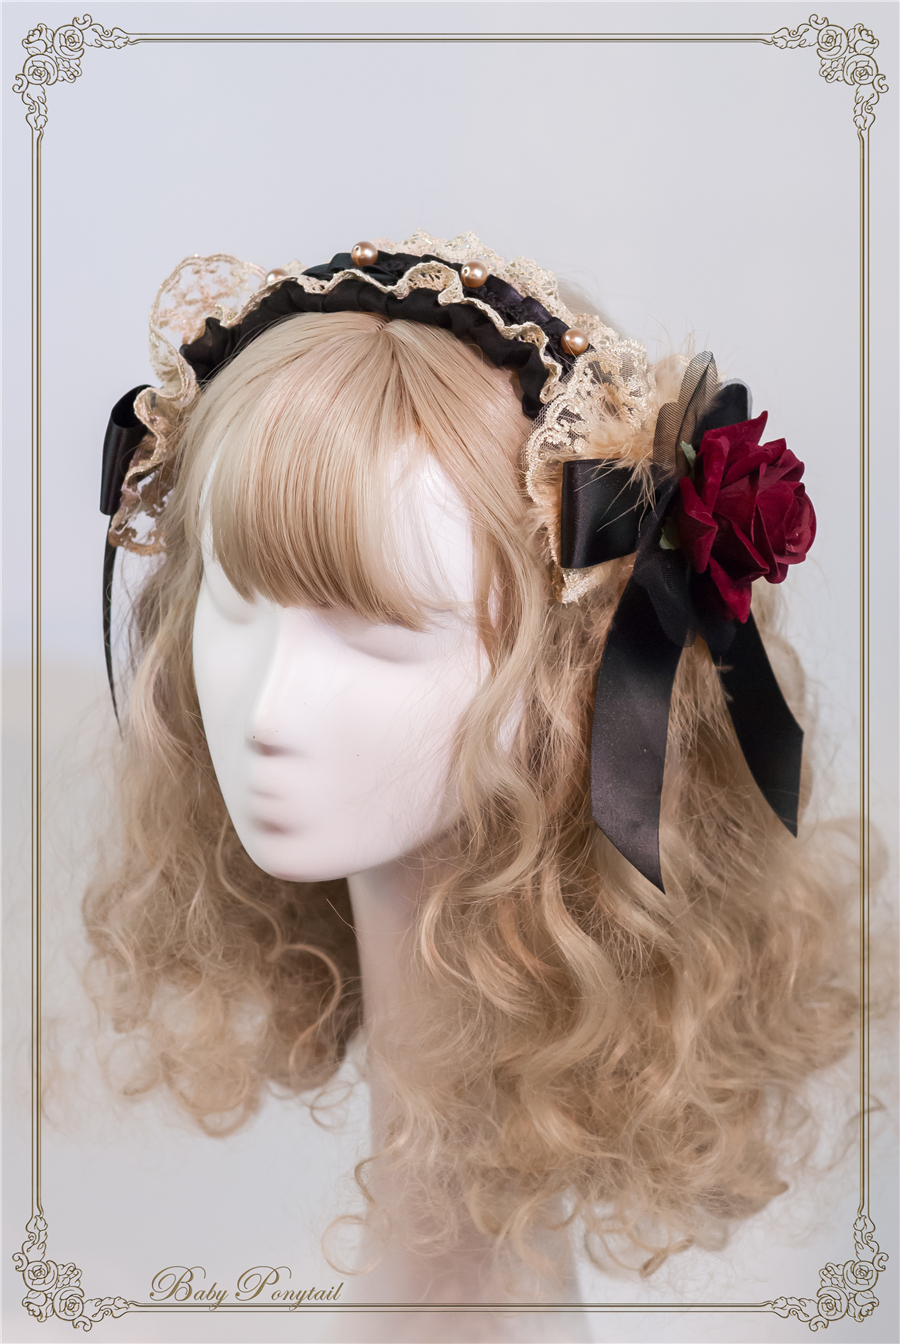 Baby Ponytail_Stock photo_Circus Princess_Rose Head Dress Black_02.jpg